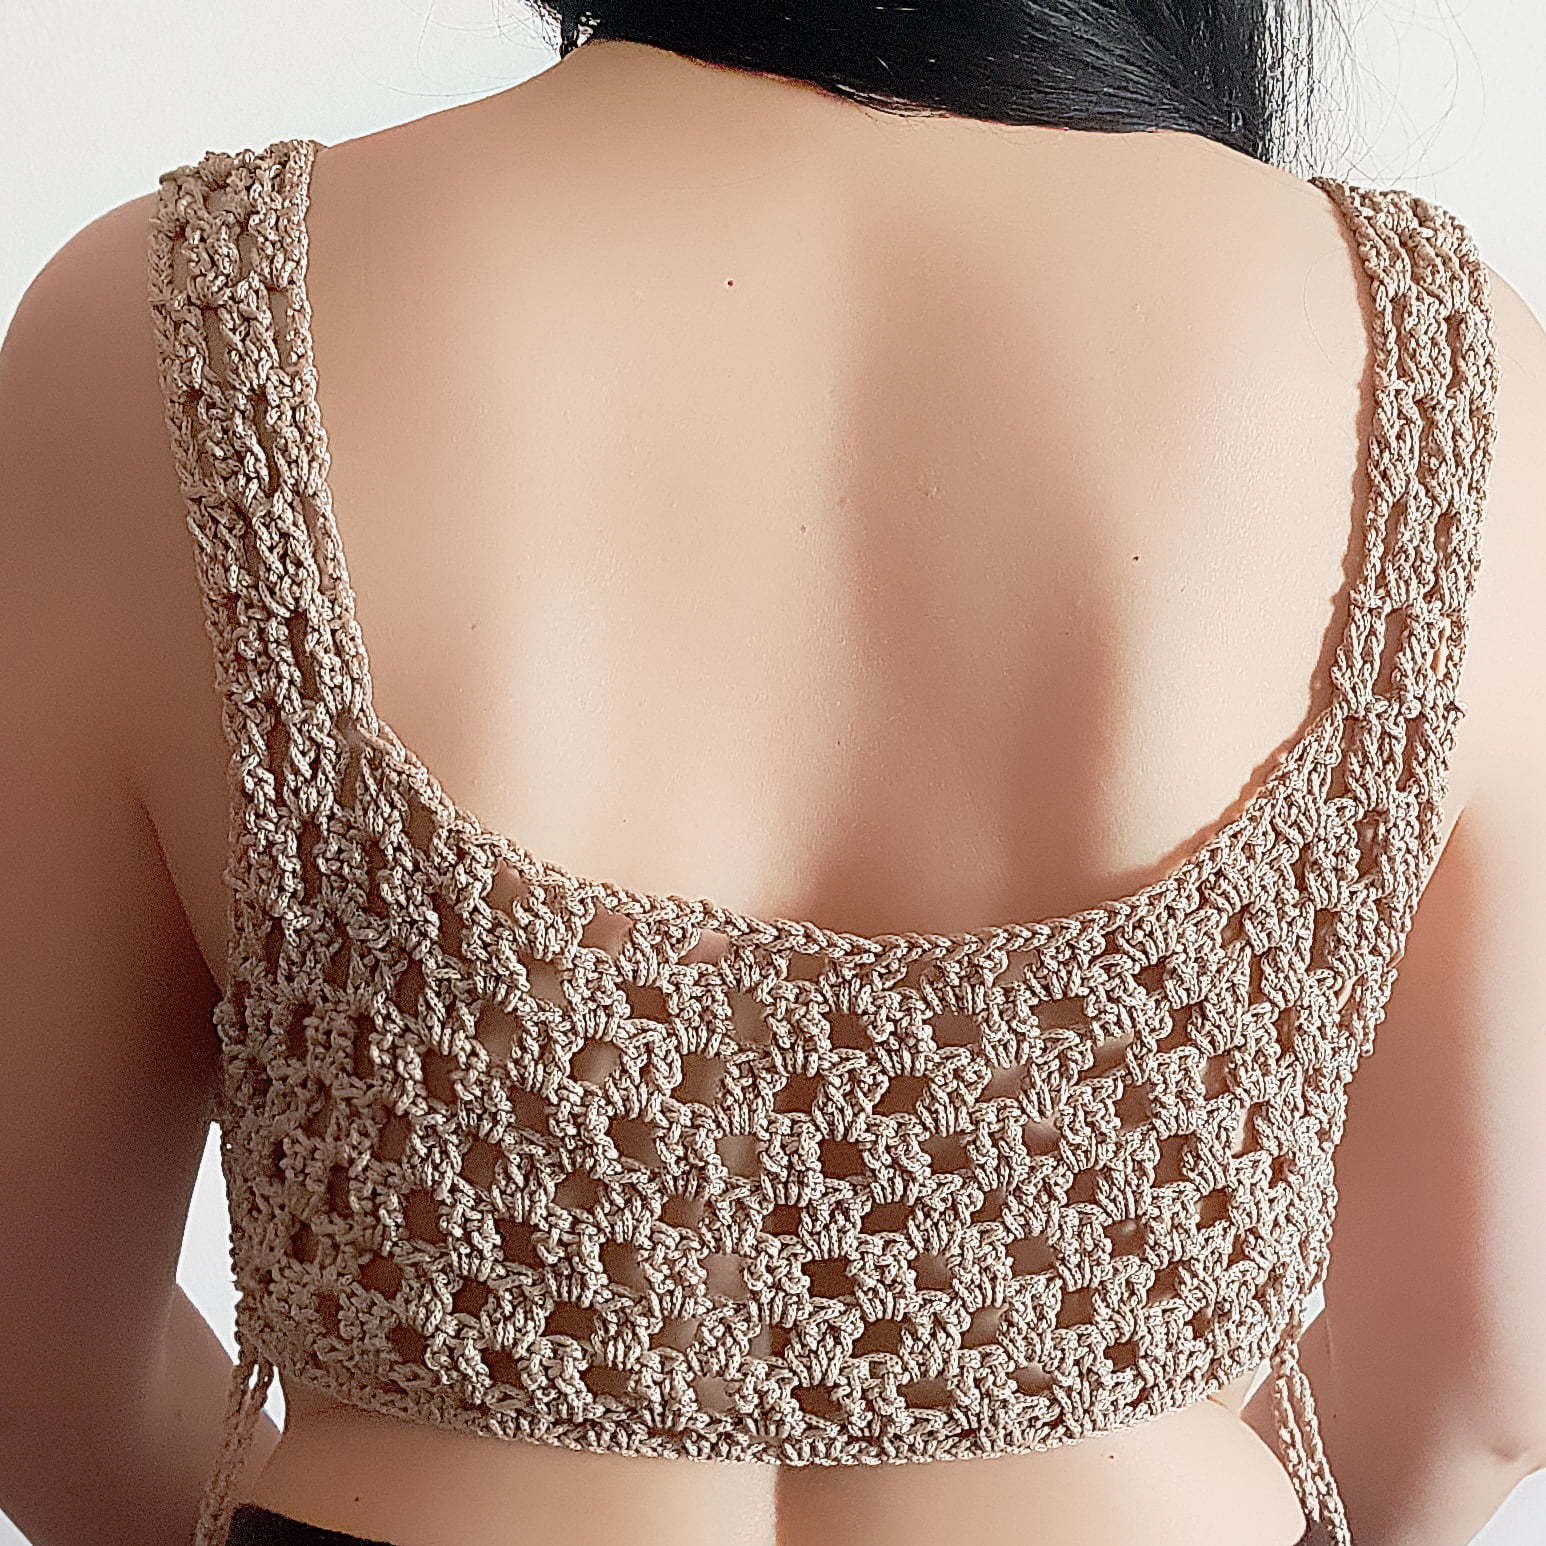 Nude crochet sexy handmade crop top 4 this crochet top was created with comfort and uniqueness in mind. Handmade top created to be a unique one of a kind clothing item. It is perfect for several sizes as you can tie-up the sides looser or tighter for a perfect and comfortable fit. A great crochet top with a modern color. Great as a casual top or with smart pants or a skirt, accessories and shoes for a more smart casual occasion.